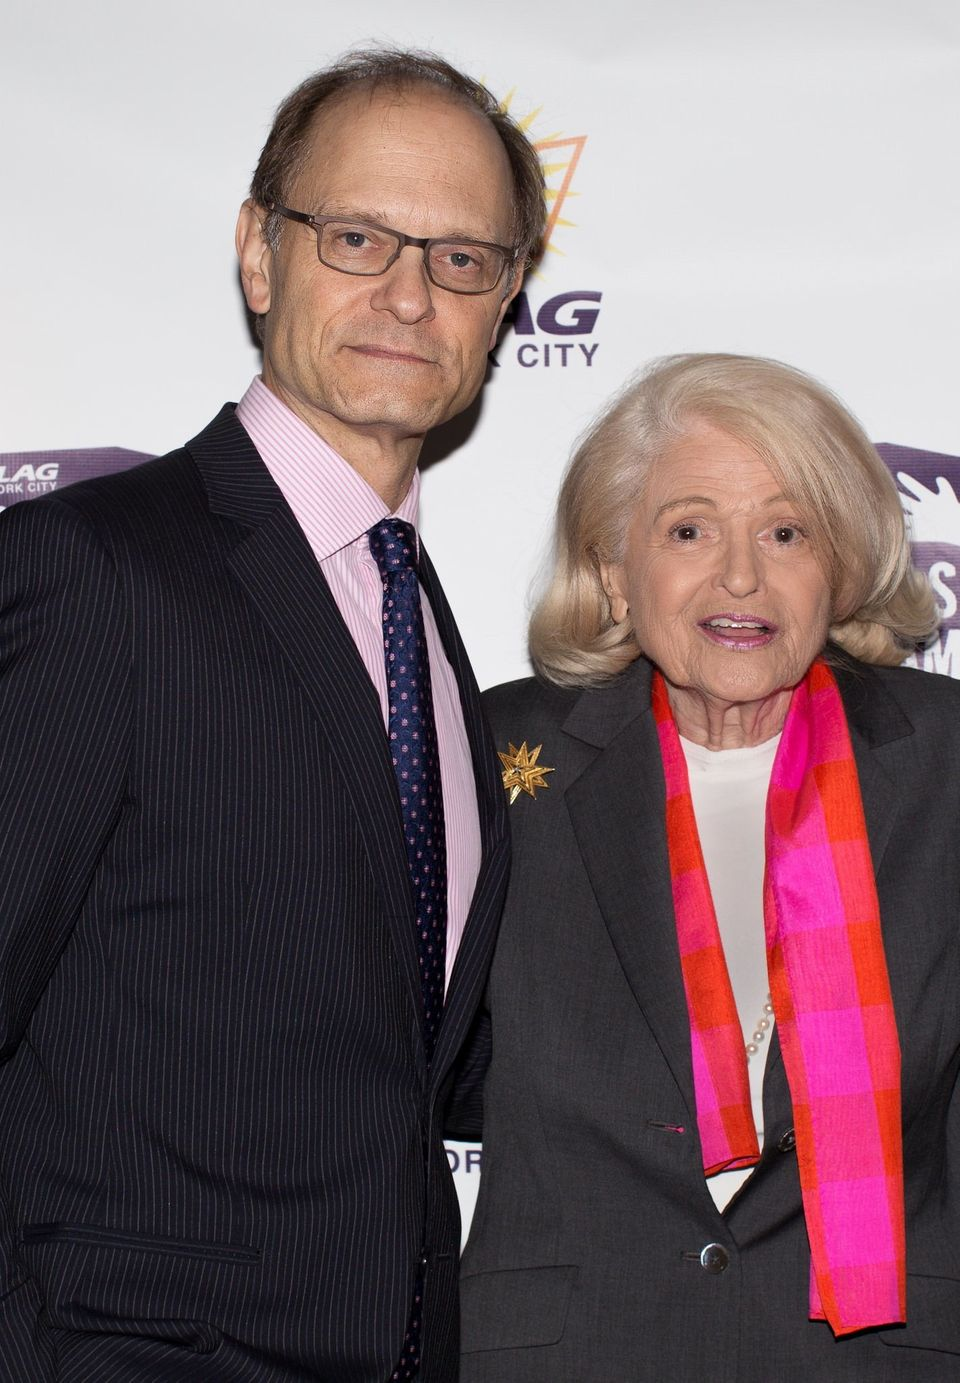 """David Hyde Pierce, emcee for the 40th Anniversary PFLAG NYC Awards Dinner, with Edie Windsor, winner of the PFLAG NYC """"Stay C"""